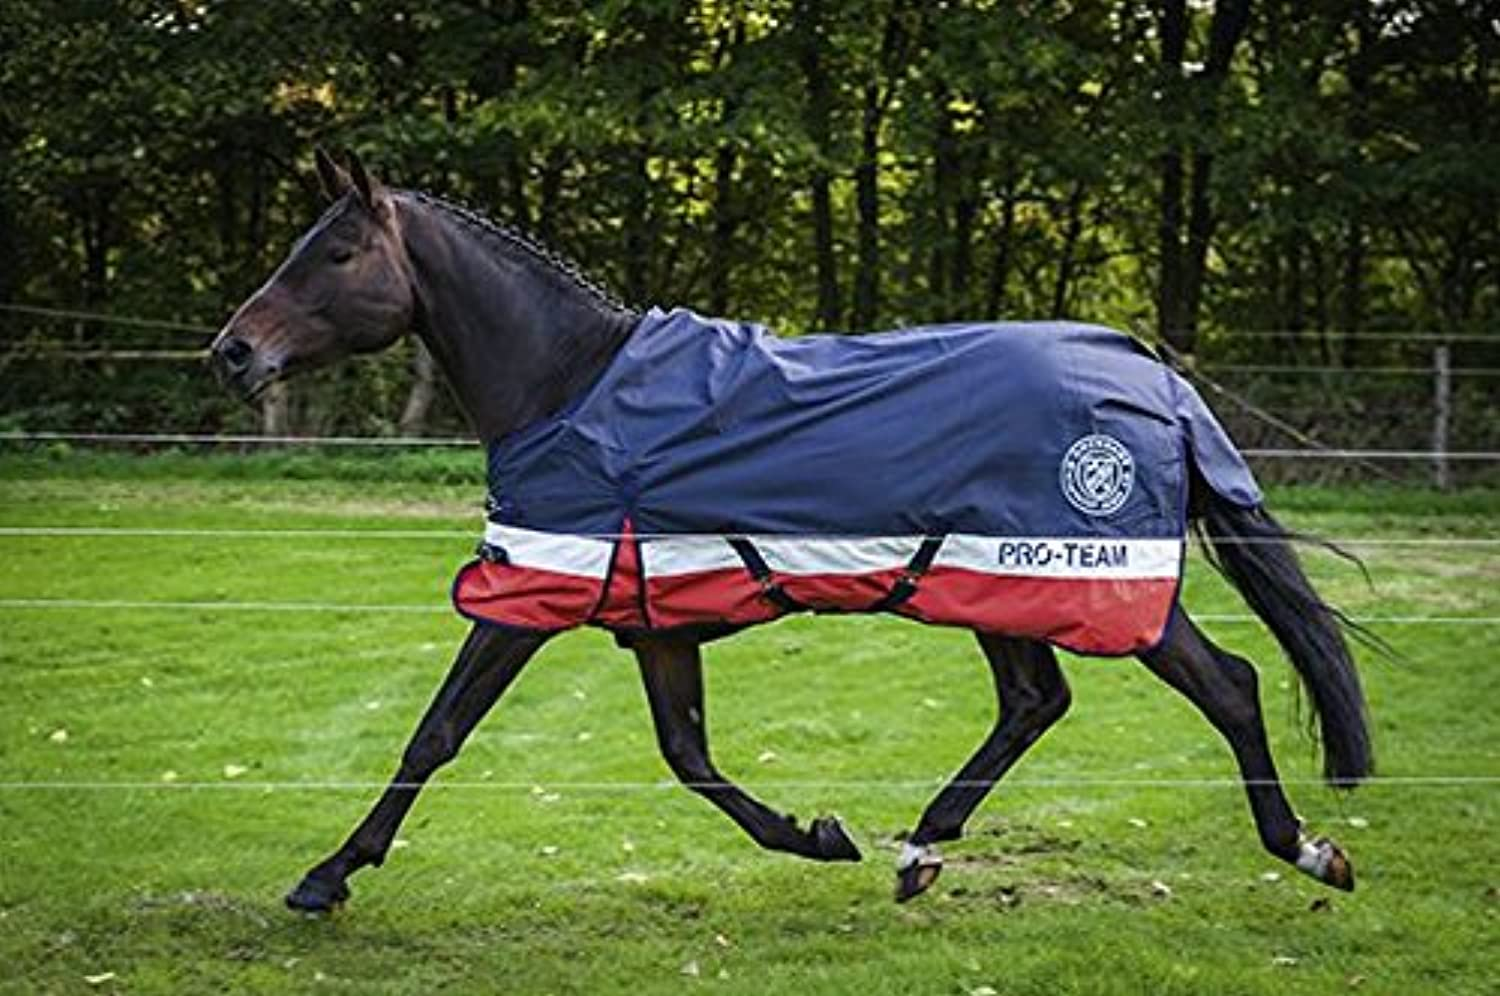 Hkm Pro Team Helsinki Turnout Rug 1200D with Polar Fleece Lining